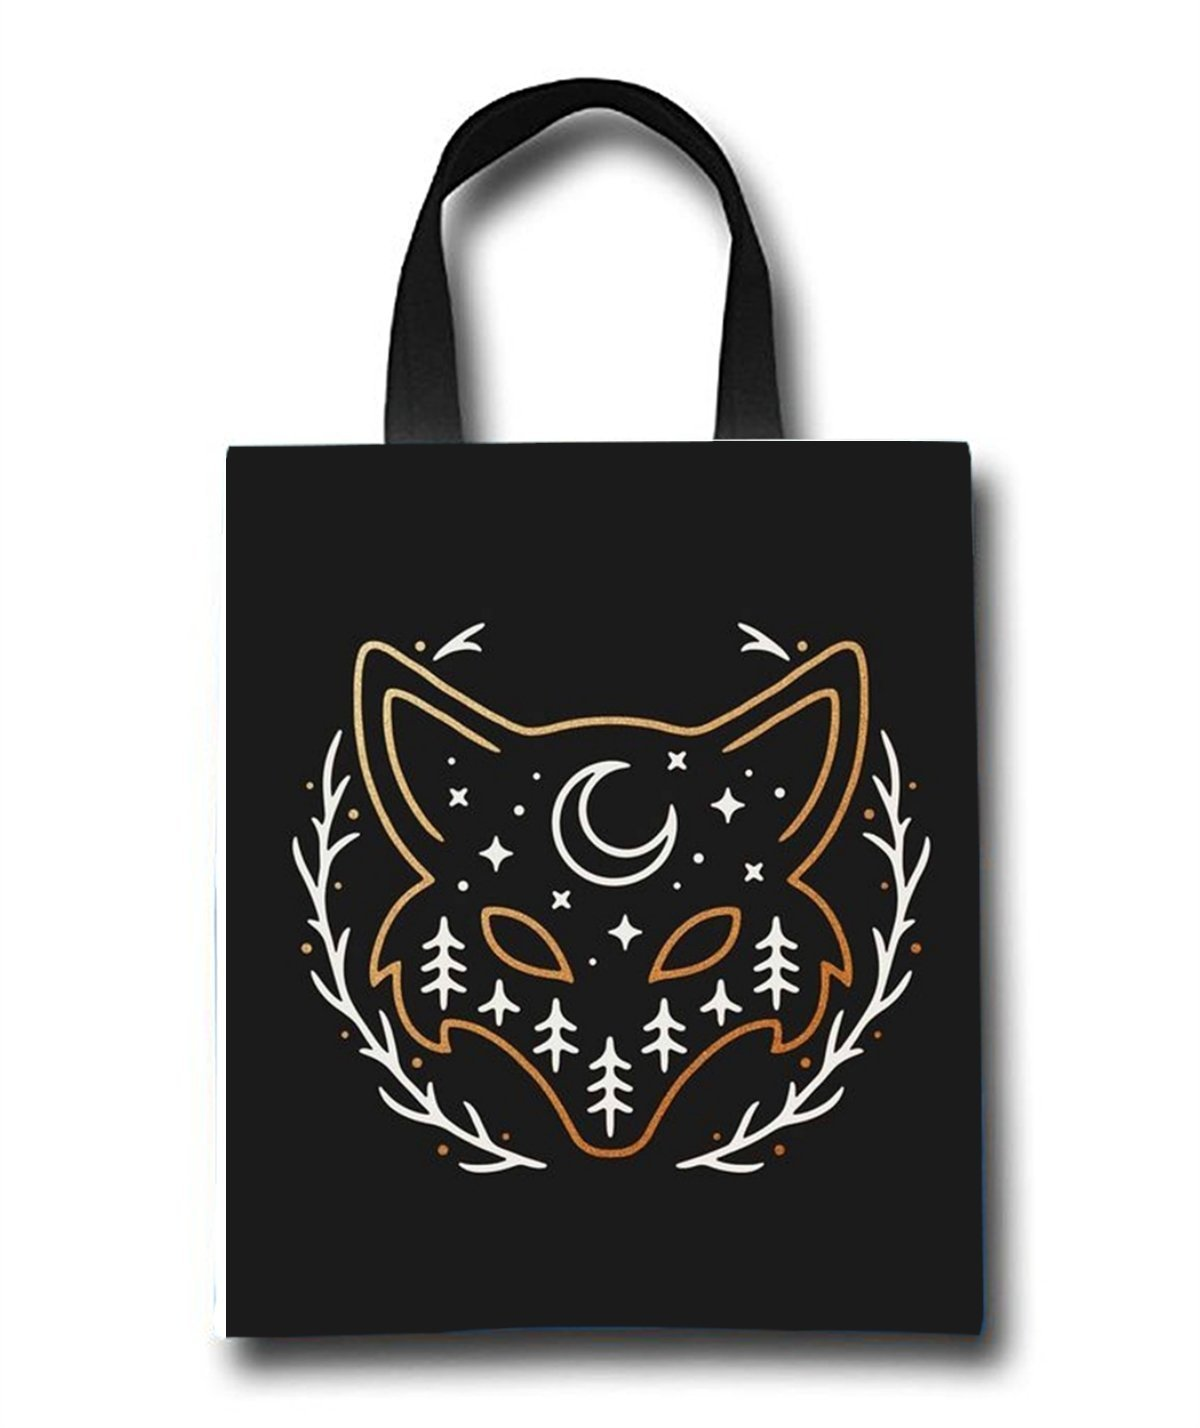 Fox Beach Tote Bag - Toy Tote Bag - Large Lightweight Market, Grocery & Picnic